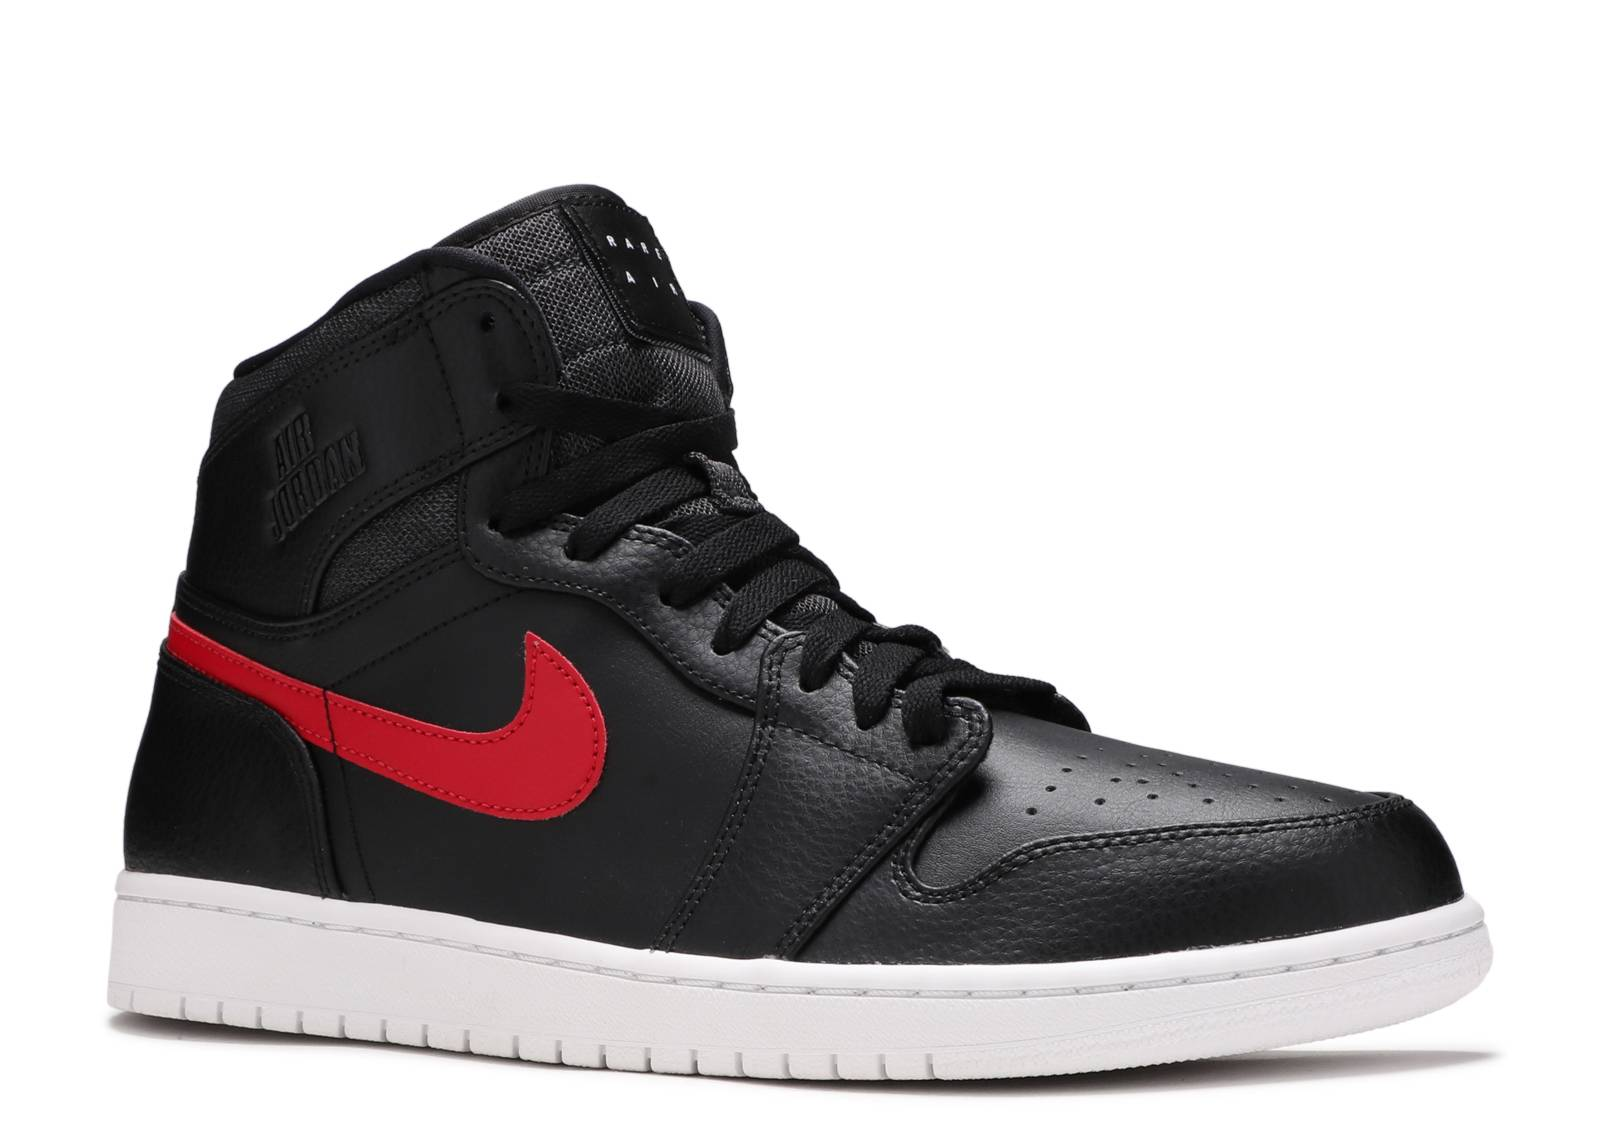 promo code 984a8 173d5 Air Jordan 1 Retro High